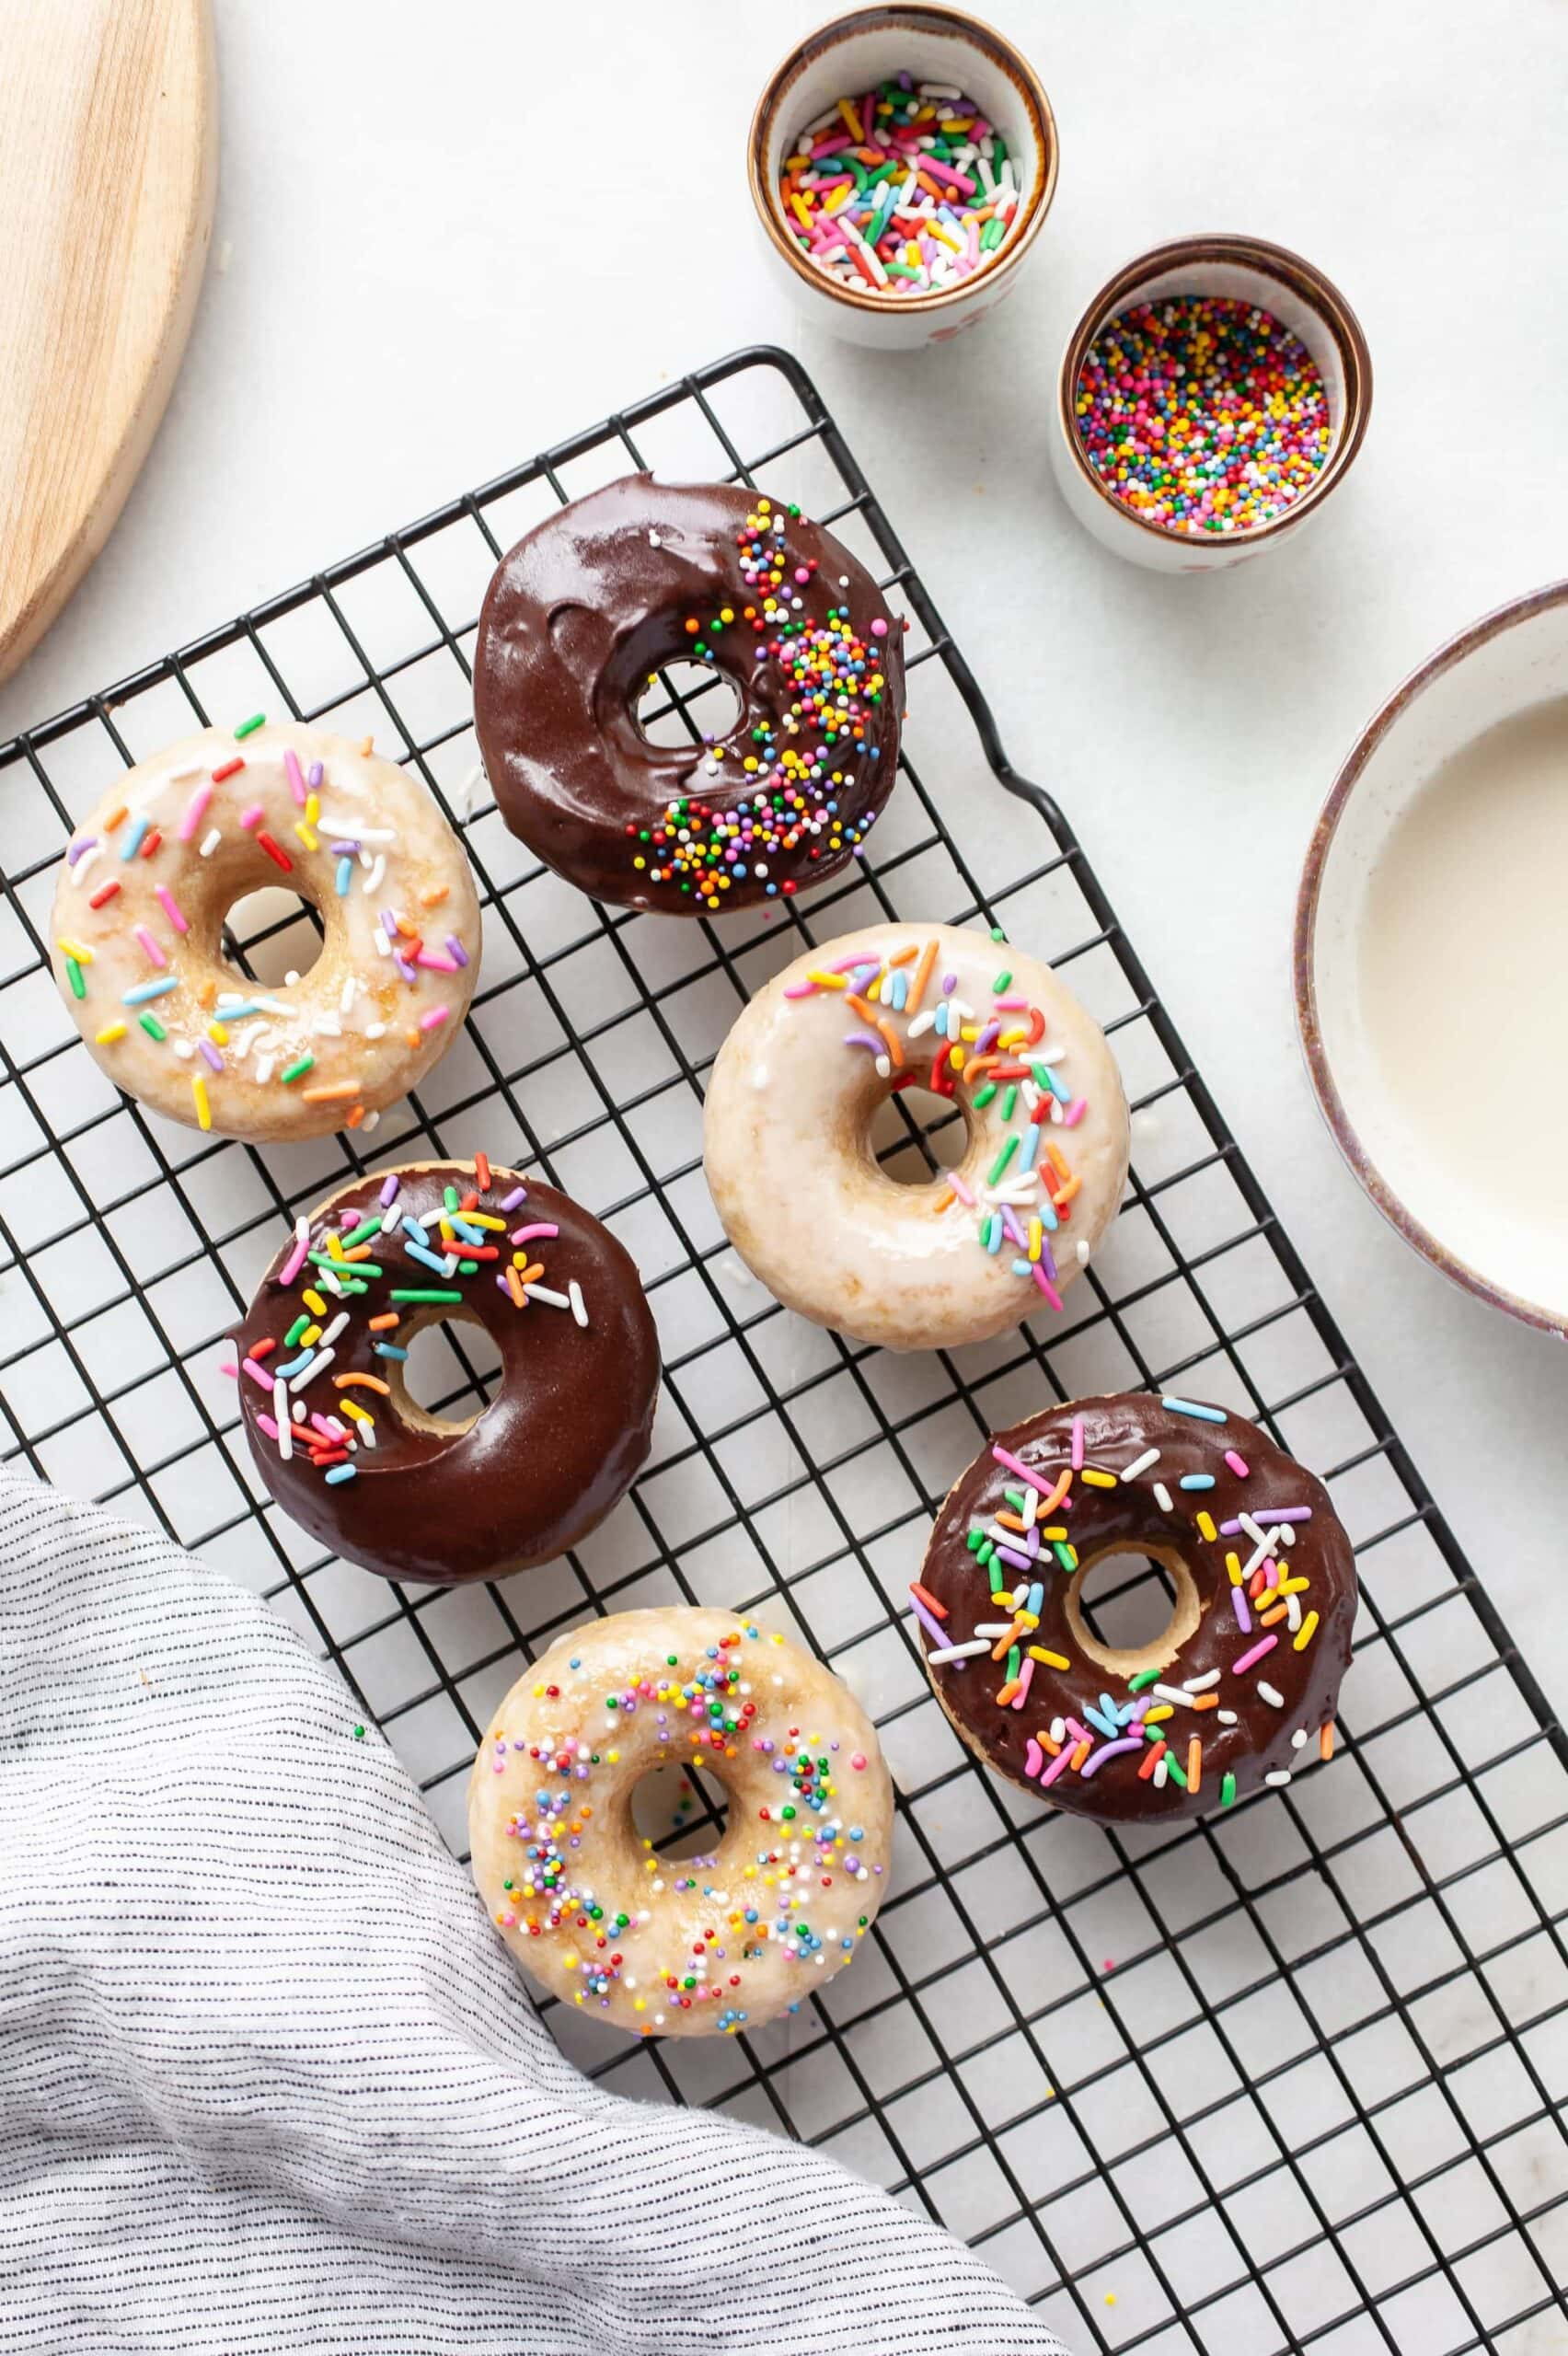 cooling rack topped with protein donuts covered in chocolate and vanilla glaze and rainbow sprinkles